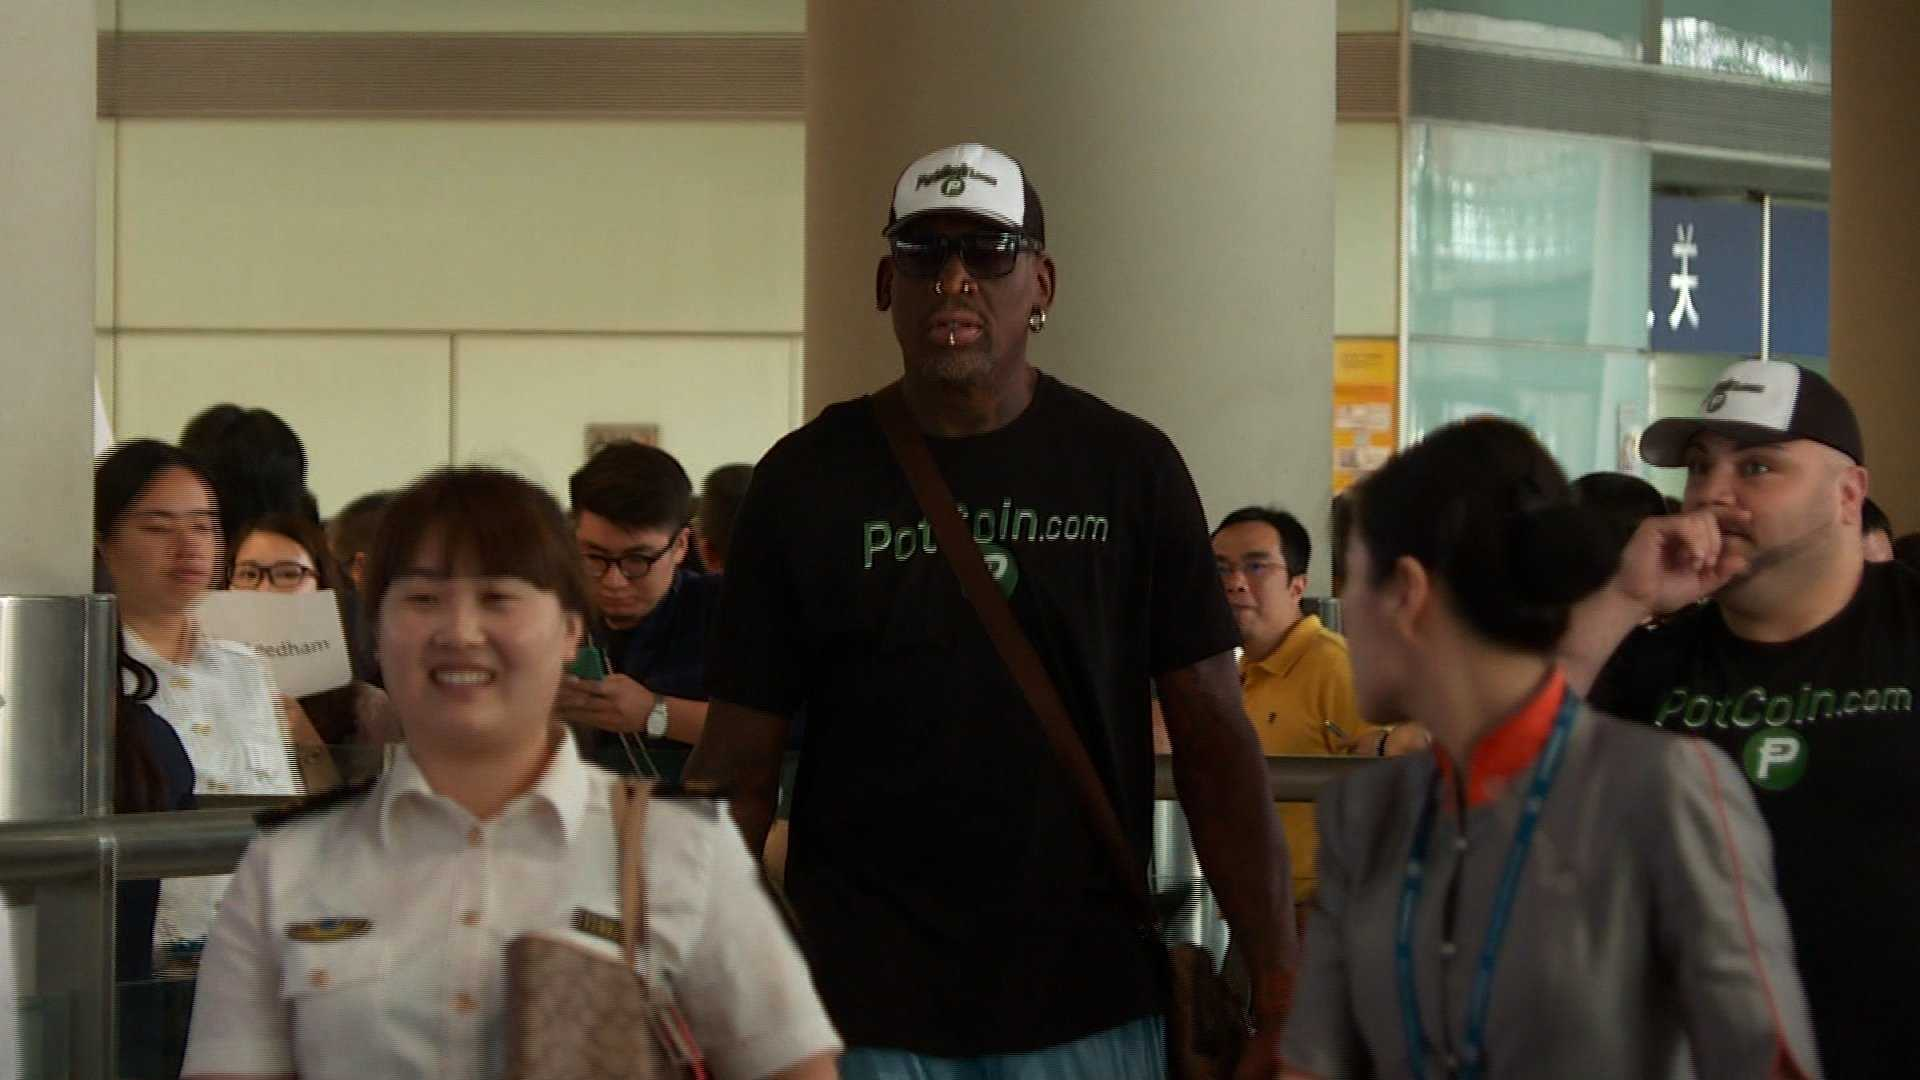 Former NBA bad boy Rodman is back in North Korea